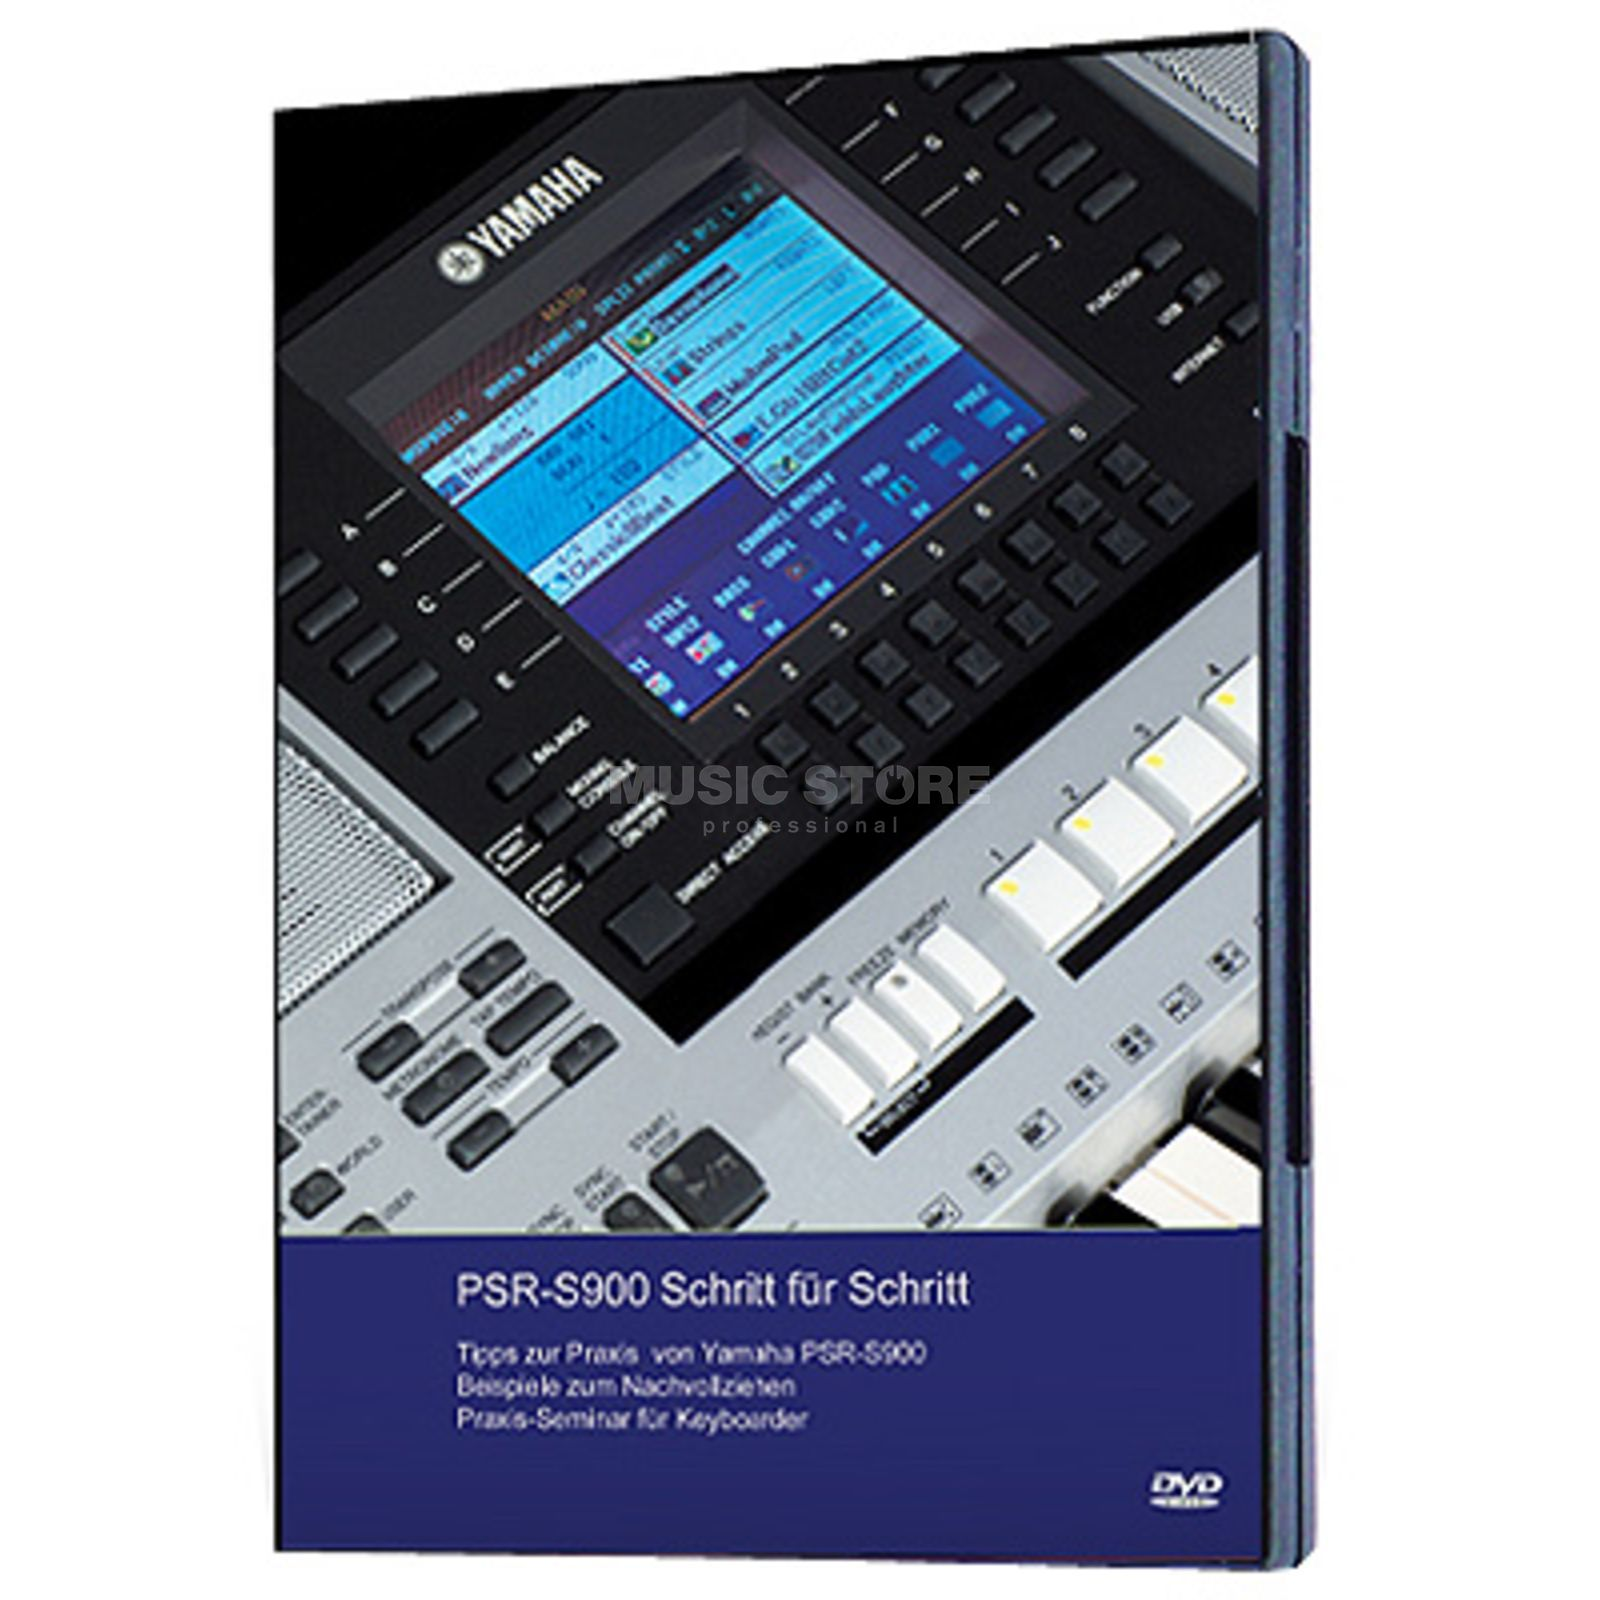 Keyboard-Seminare PSR-S900 Schritt für Schritt Video DVD (German Version) Produktbillede